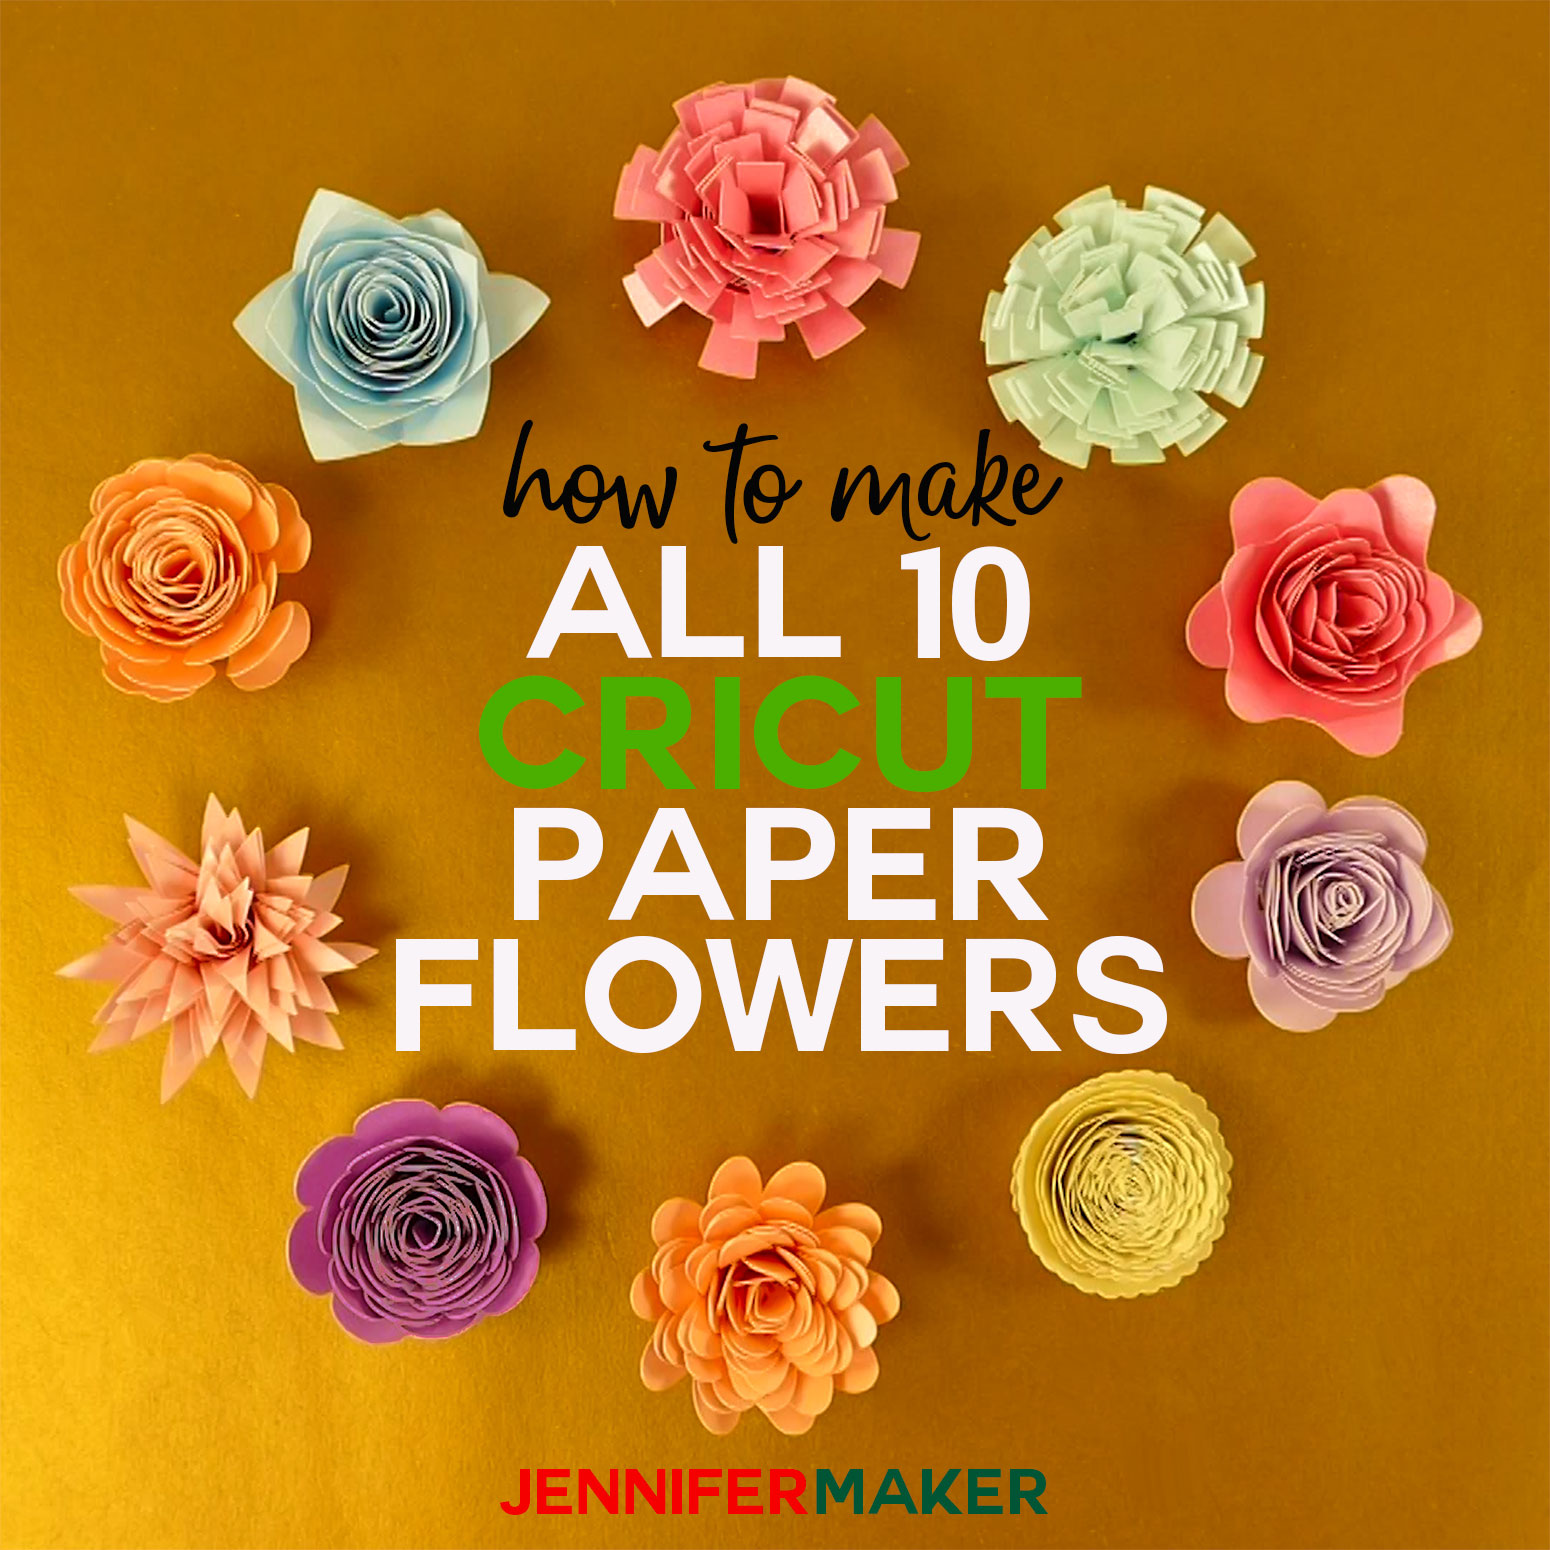 How To Make Cricut Paper Flowers All 10 Jennifer Maker